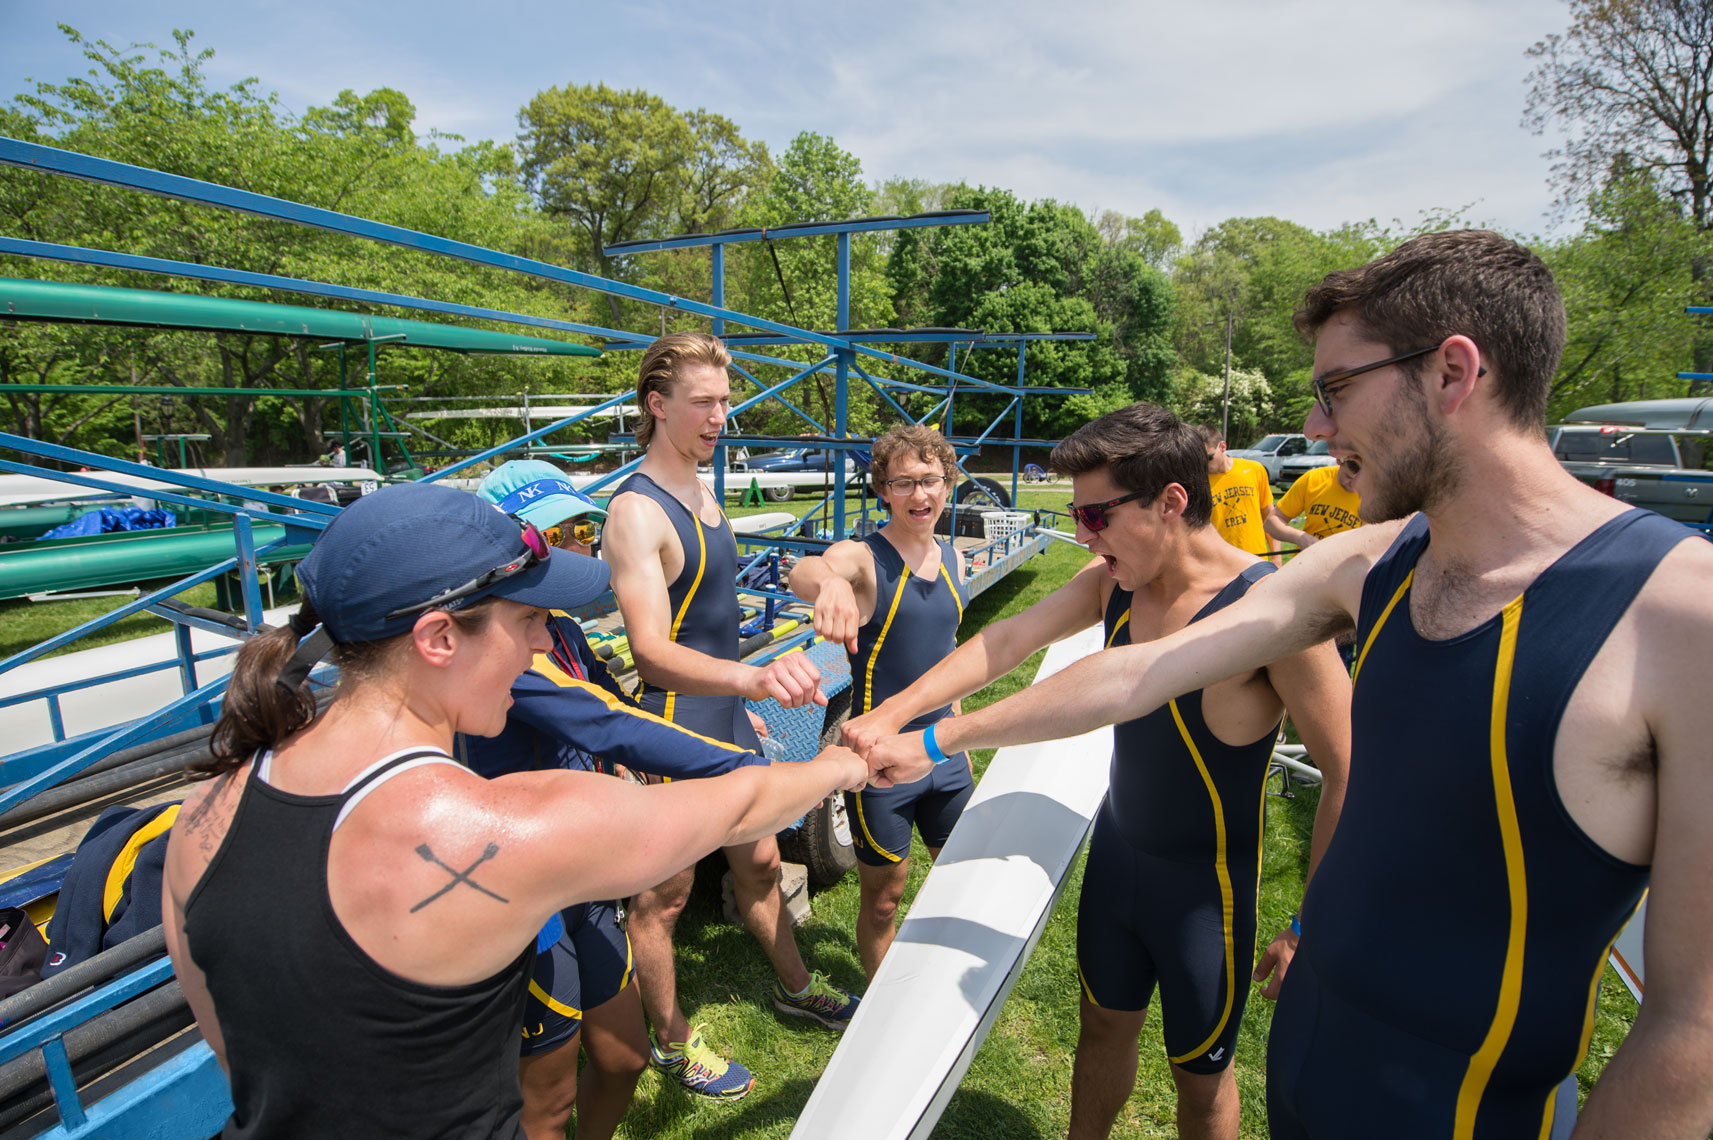 TCNJ, by college sports photographer Mike Morgan